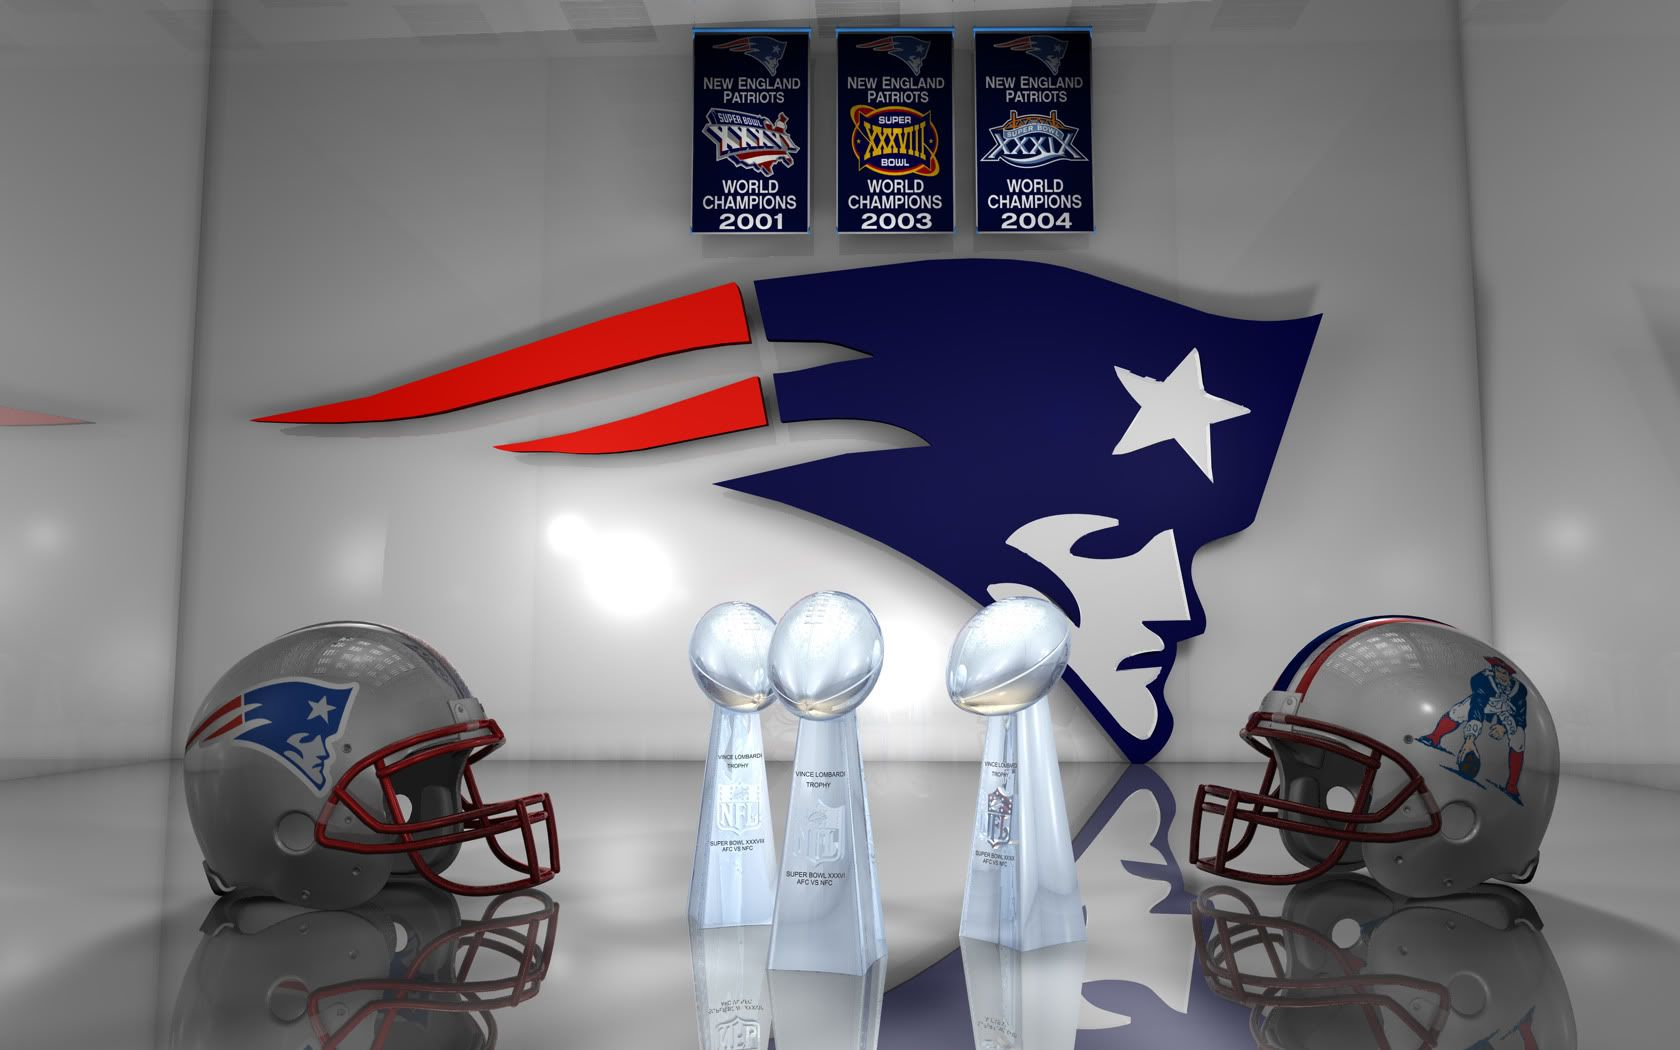 New england patriots championships hd wallpapers the patriots new england patriots championships hd wallpapers voltagebd Choice Image